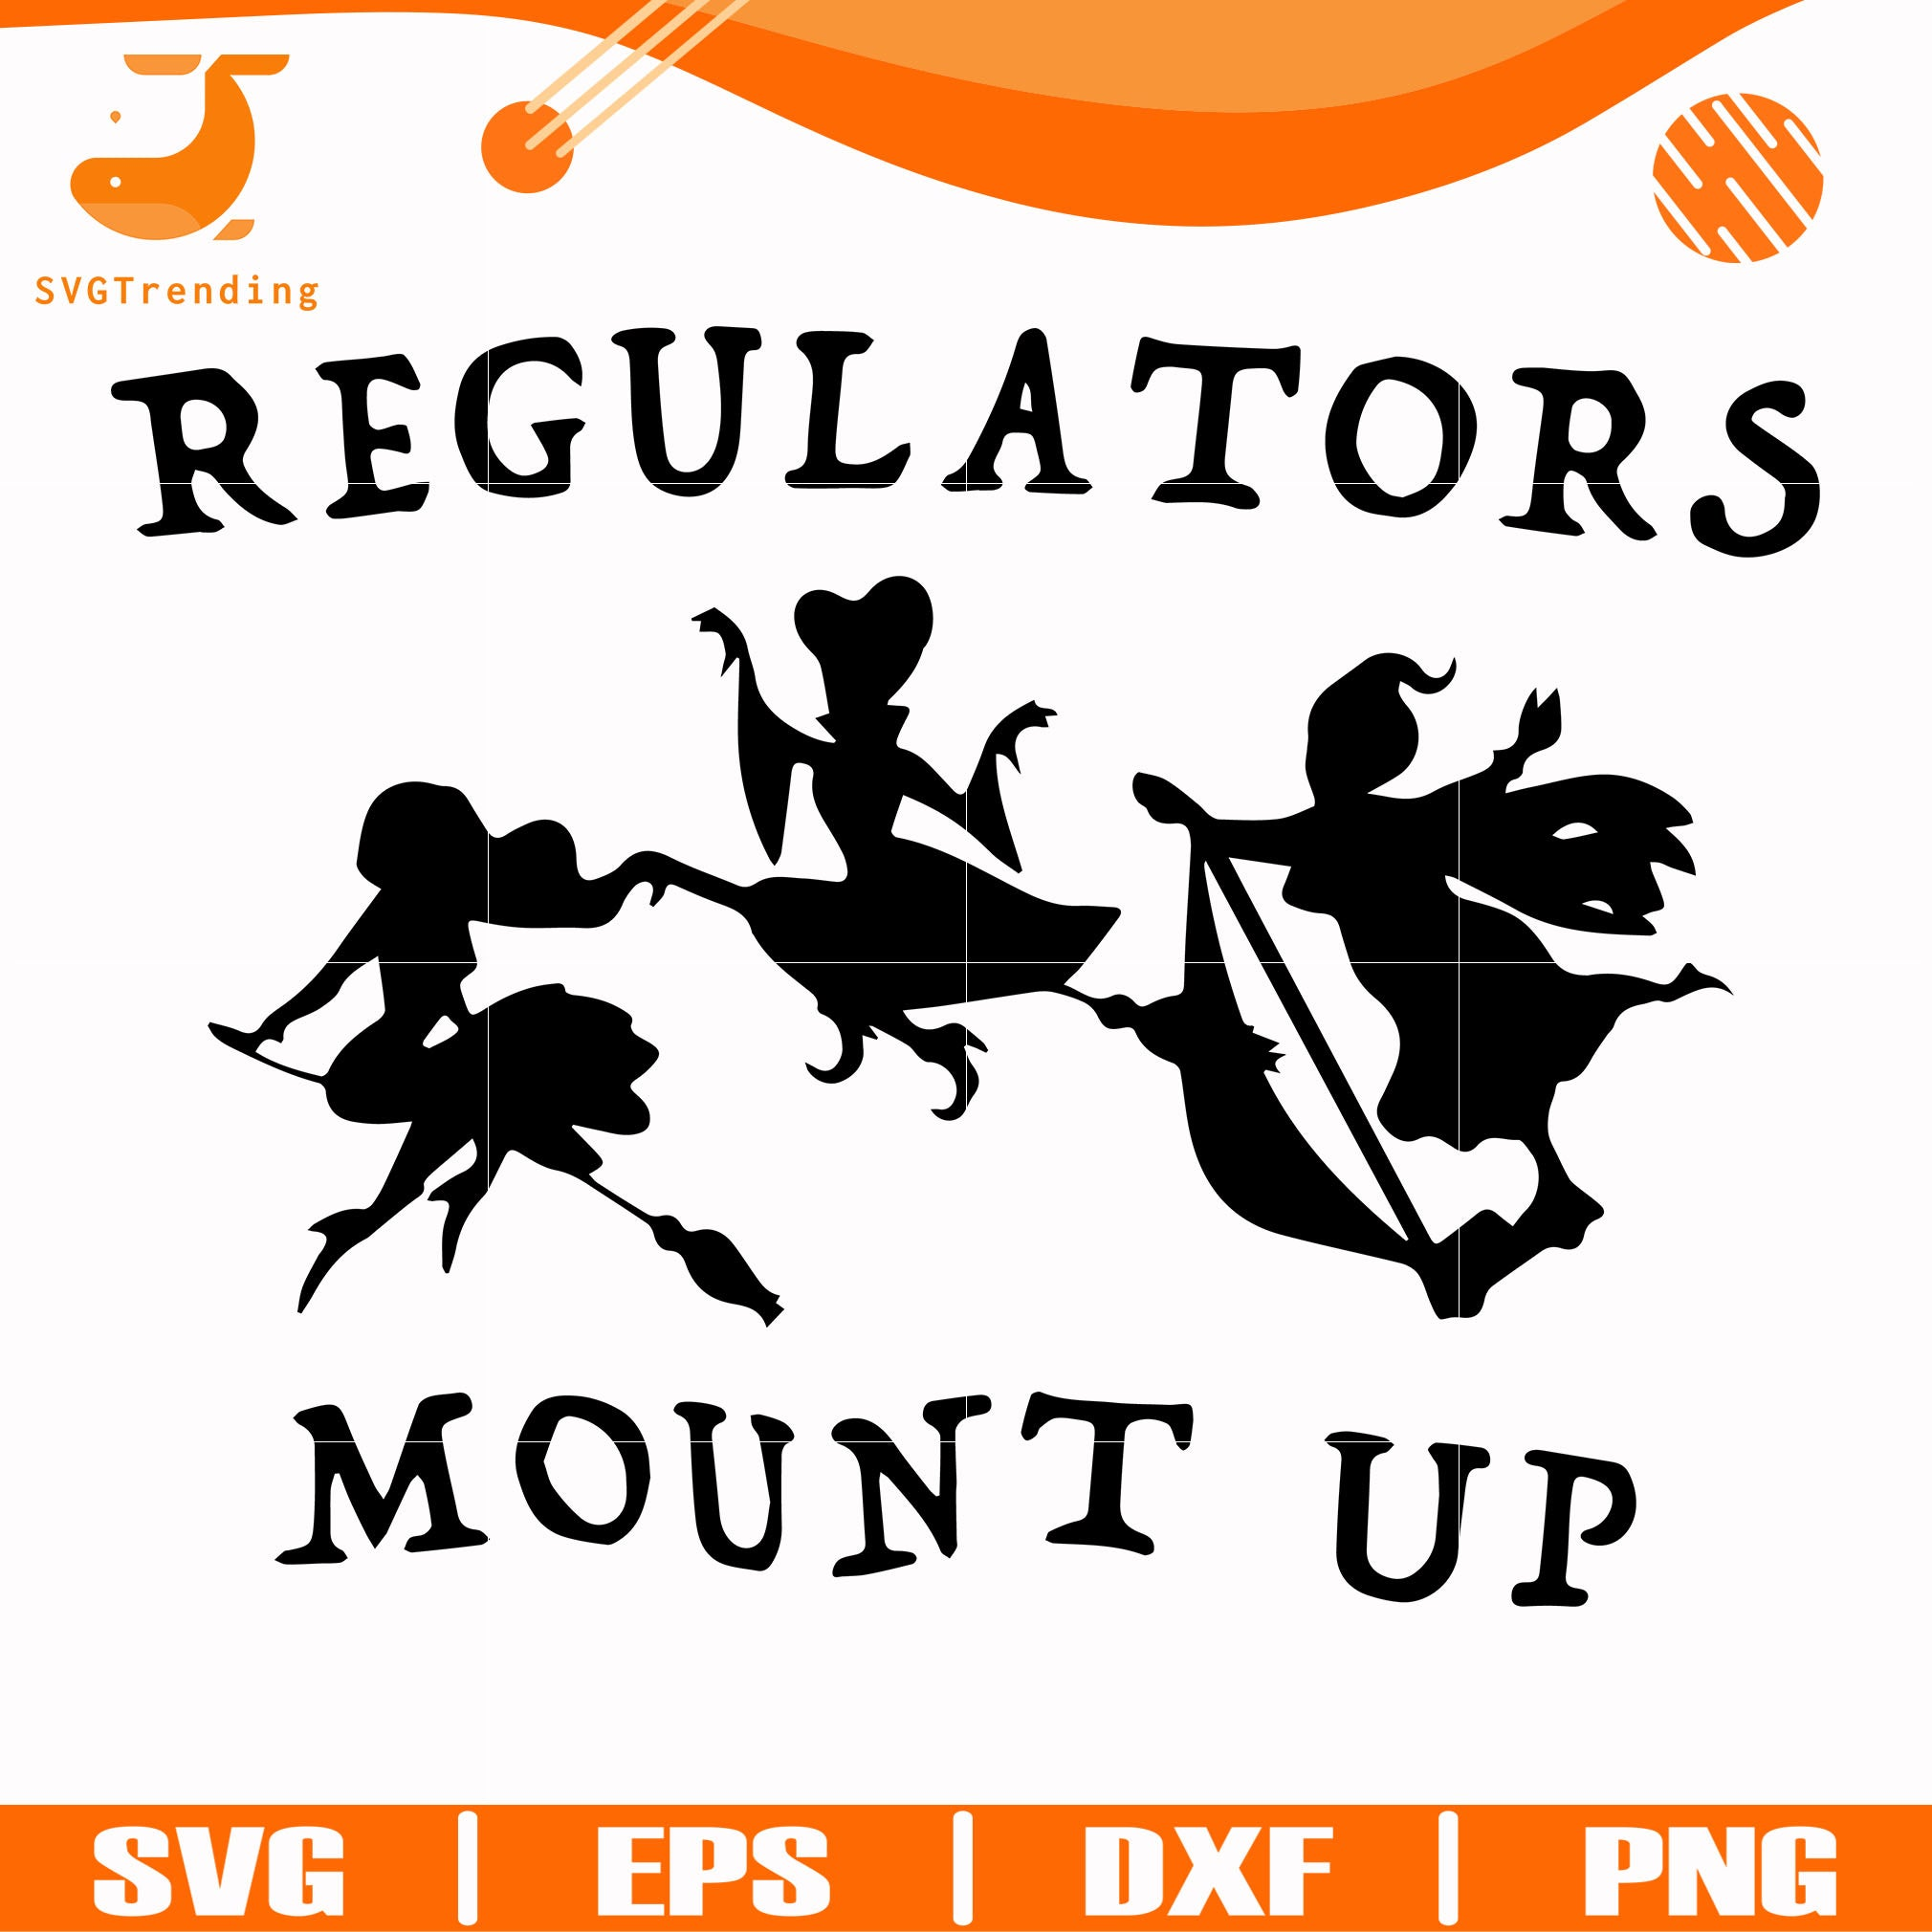 Regulators Mount Up Svg Halloween Svg Png Dxf Eps Digital File Hwl2 Svgtrending Customers assume — and f&i managers often straight up say — that the reason their f&i guy is sweating is so hard is that he's working his hardest to get the customer the best deal. regulators mount up svg halloween svg png dxf eps digital file hwl20072029